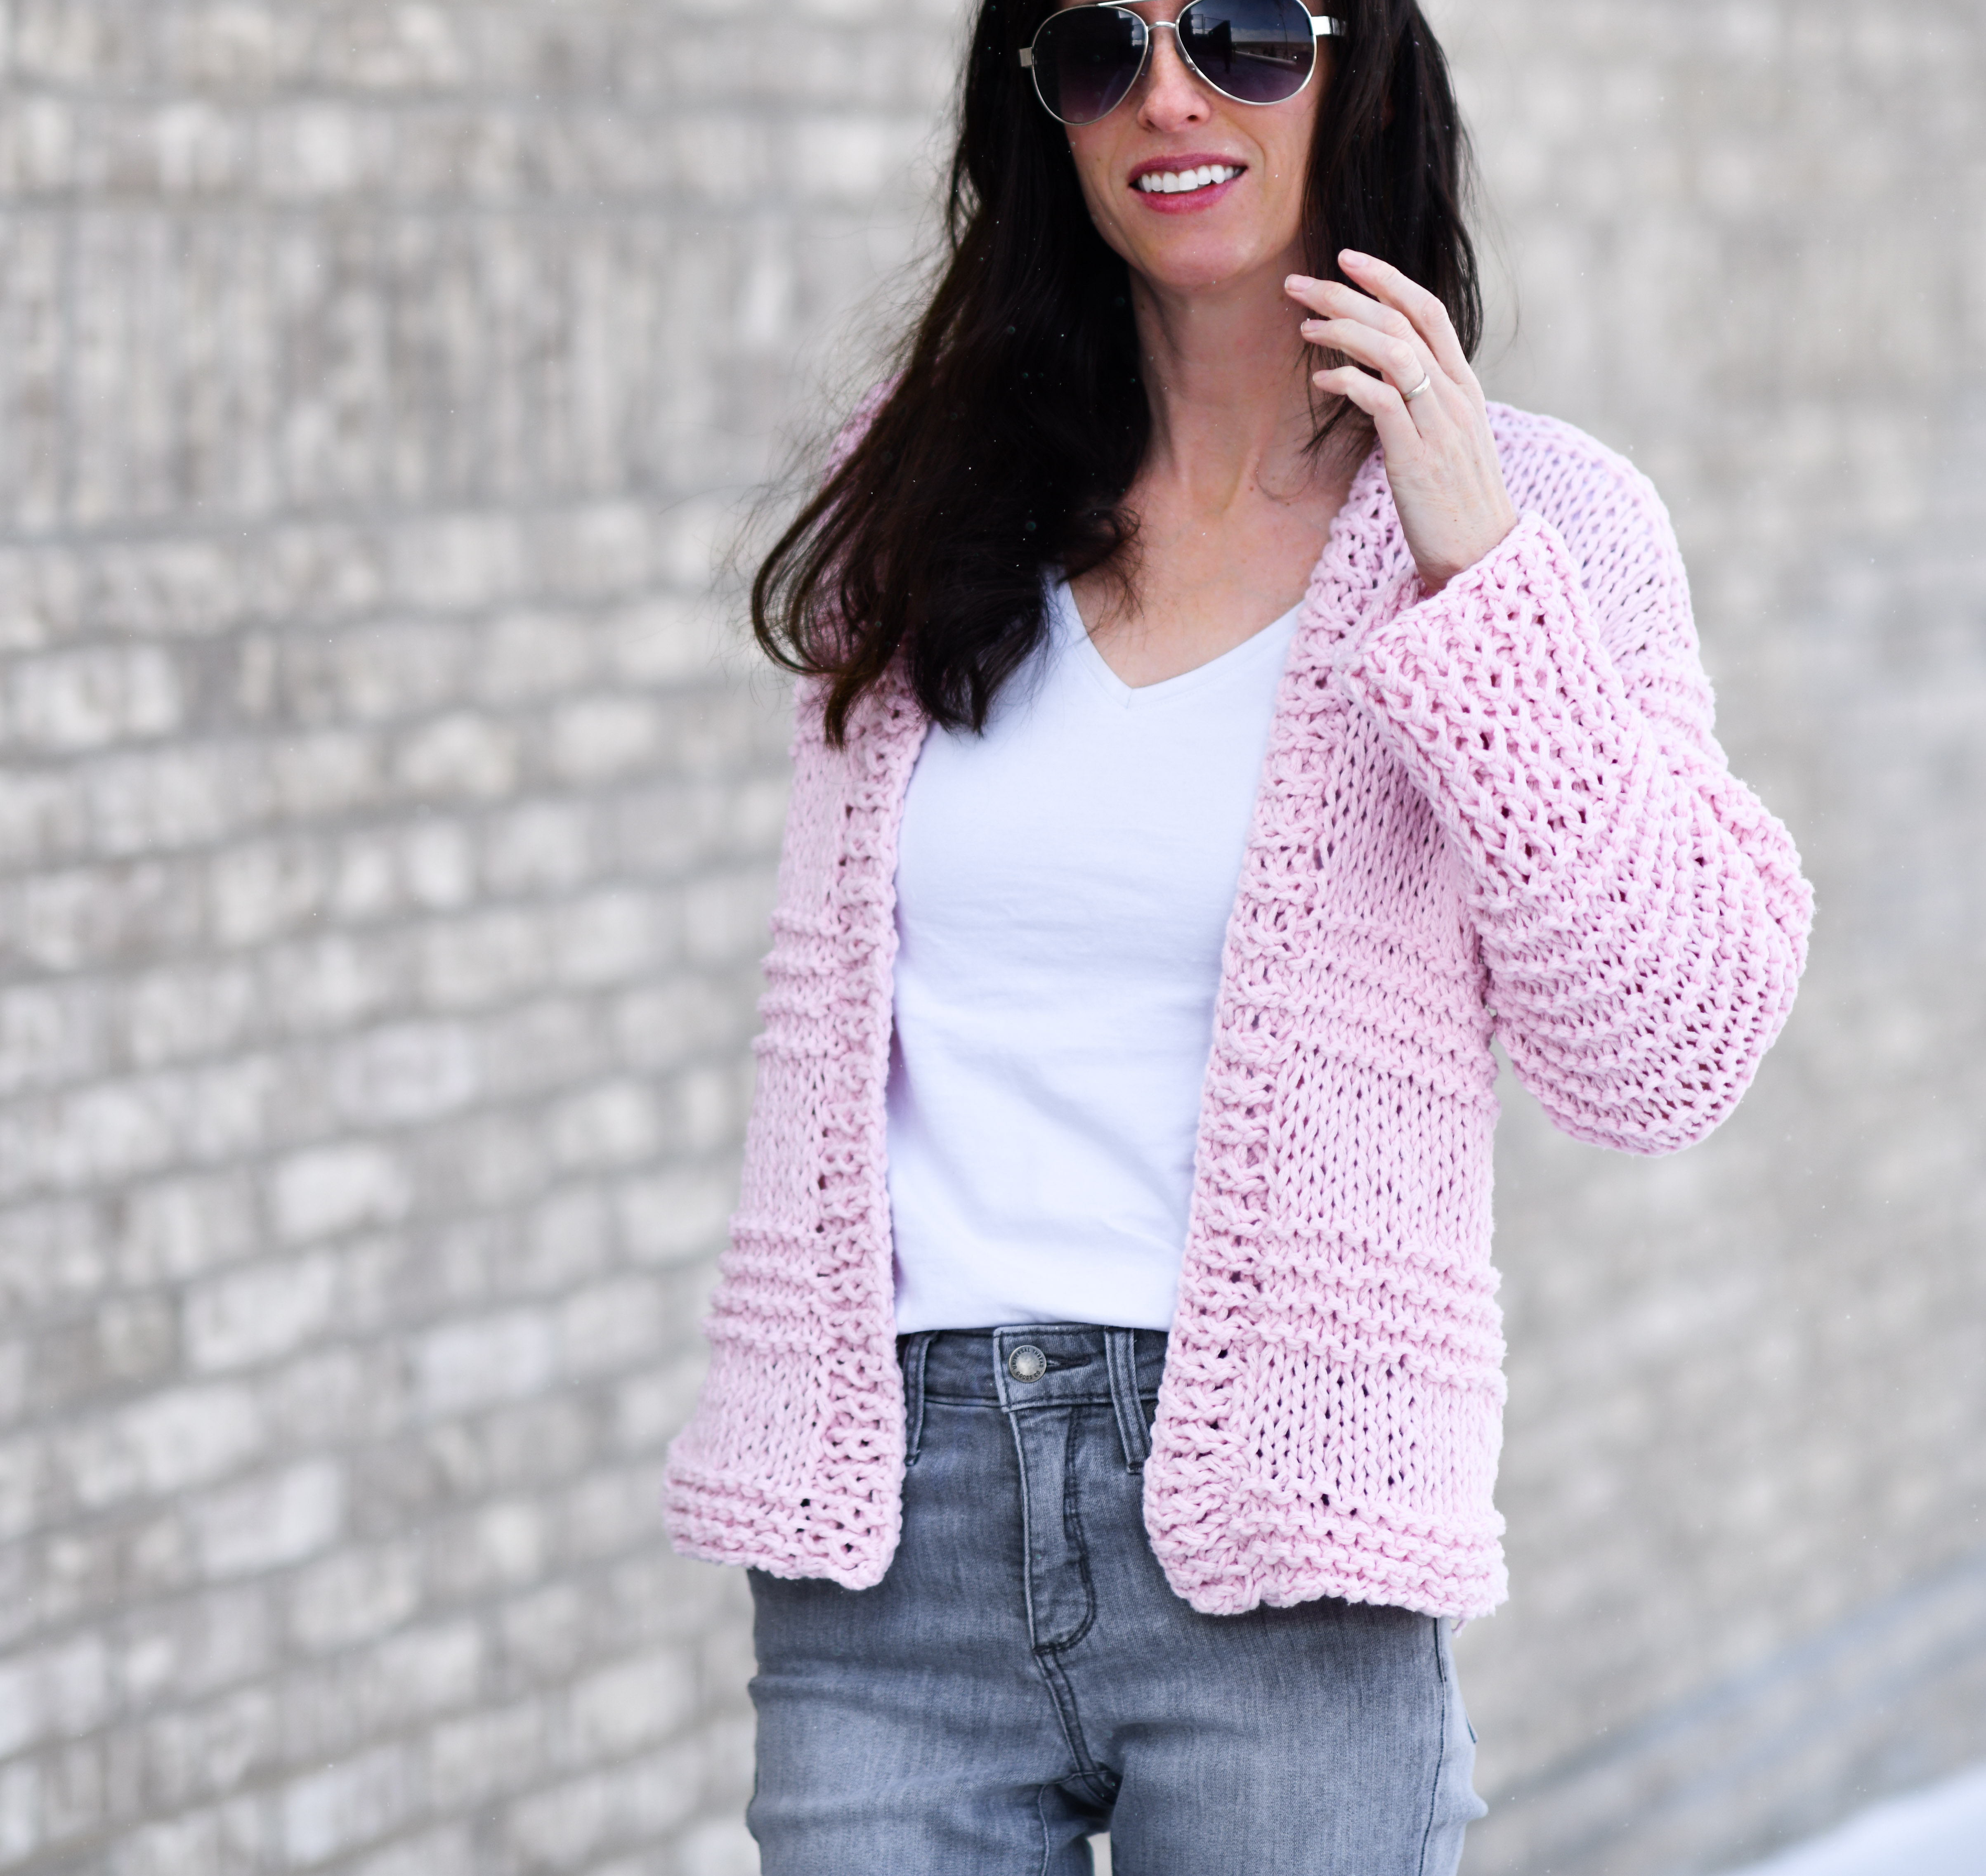 60c0ad750 Cotton Candy Easy Knit Cardigan Pattern – Mama In A Stitch